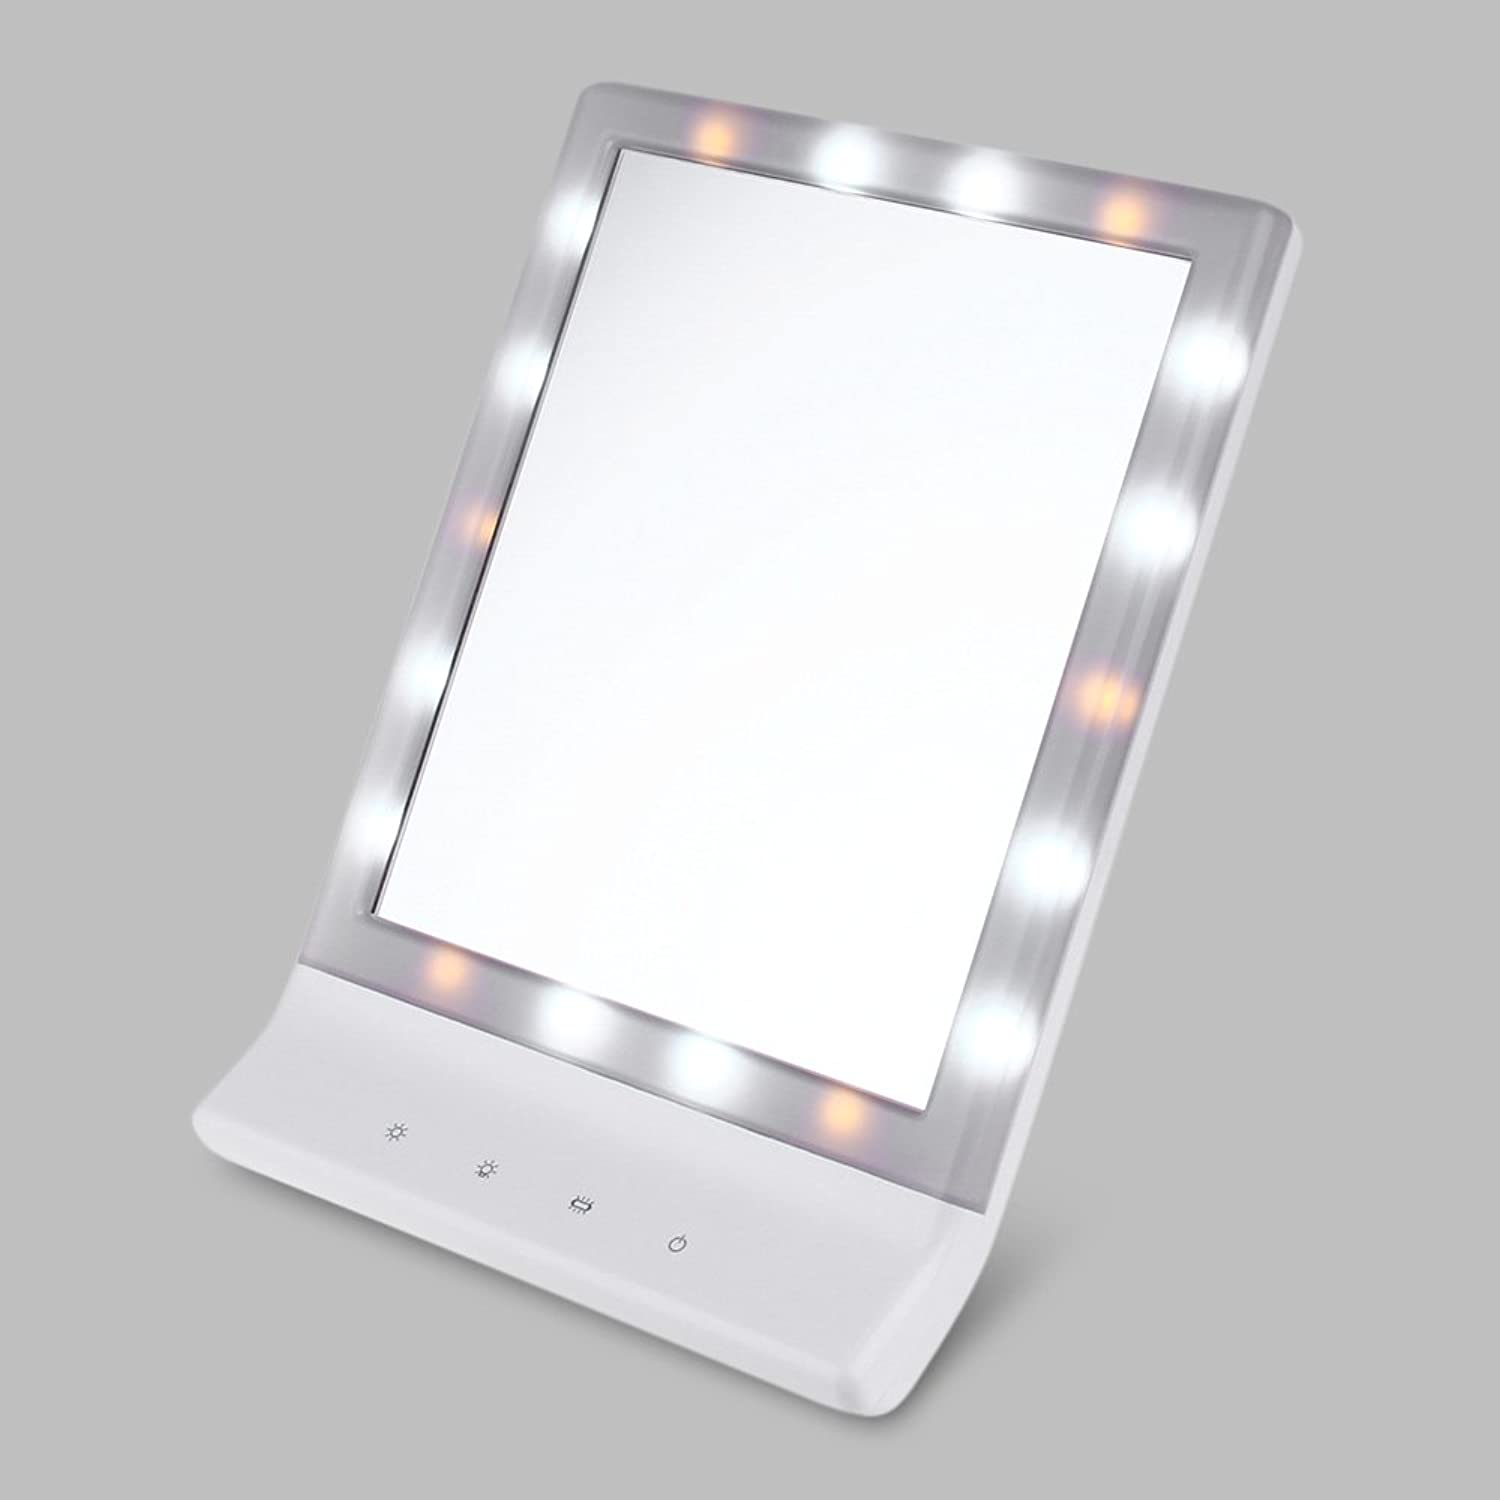 18 LEDs ABS Raw Material Touch Screen Folding Toilet Lighted Makeup Mirror Intelligently Adjust Light Brightness,29.50 x 20.50 x 2.20 cm